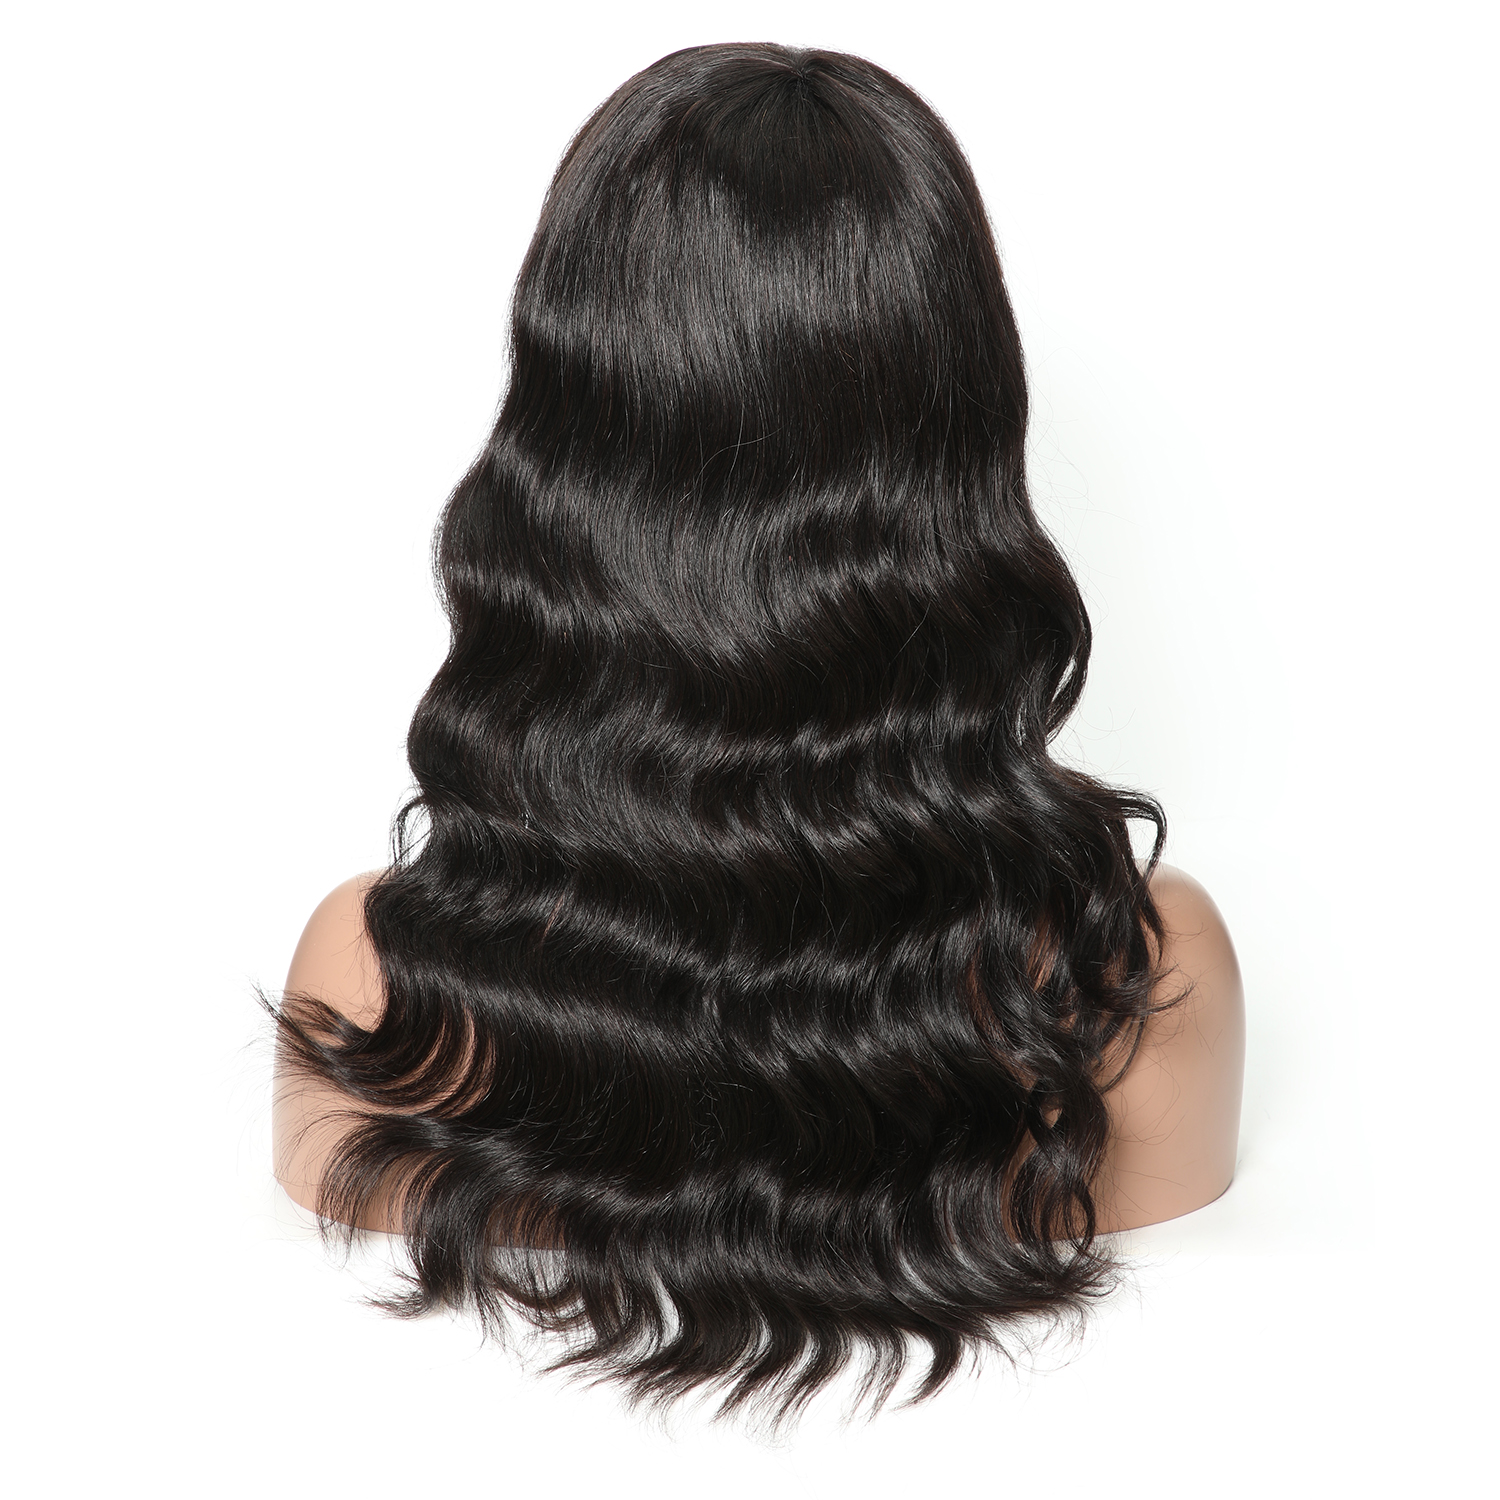 Brazilian Loose Wave Human Hair Wigs With Bangs Brazilian Hair Non-Remy Long Wig 130% 1B And Burgundy Machine Made Cheap Wigs